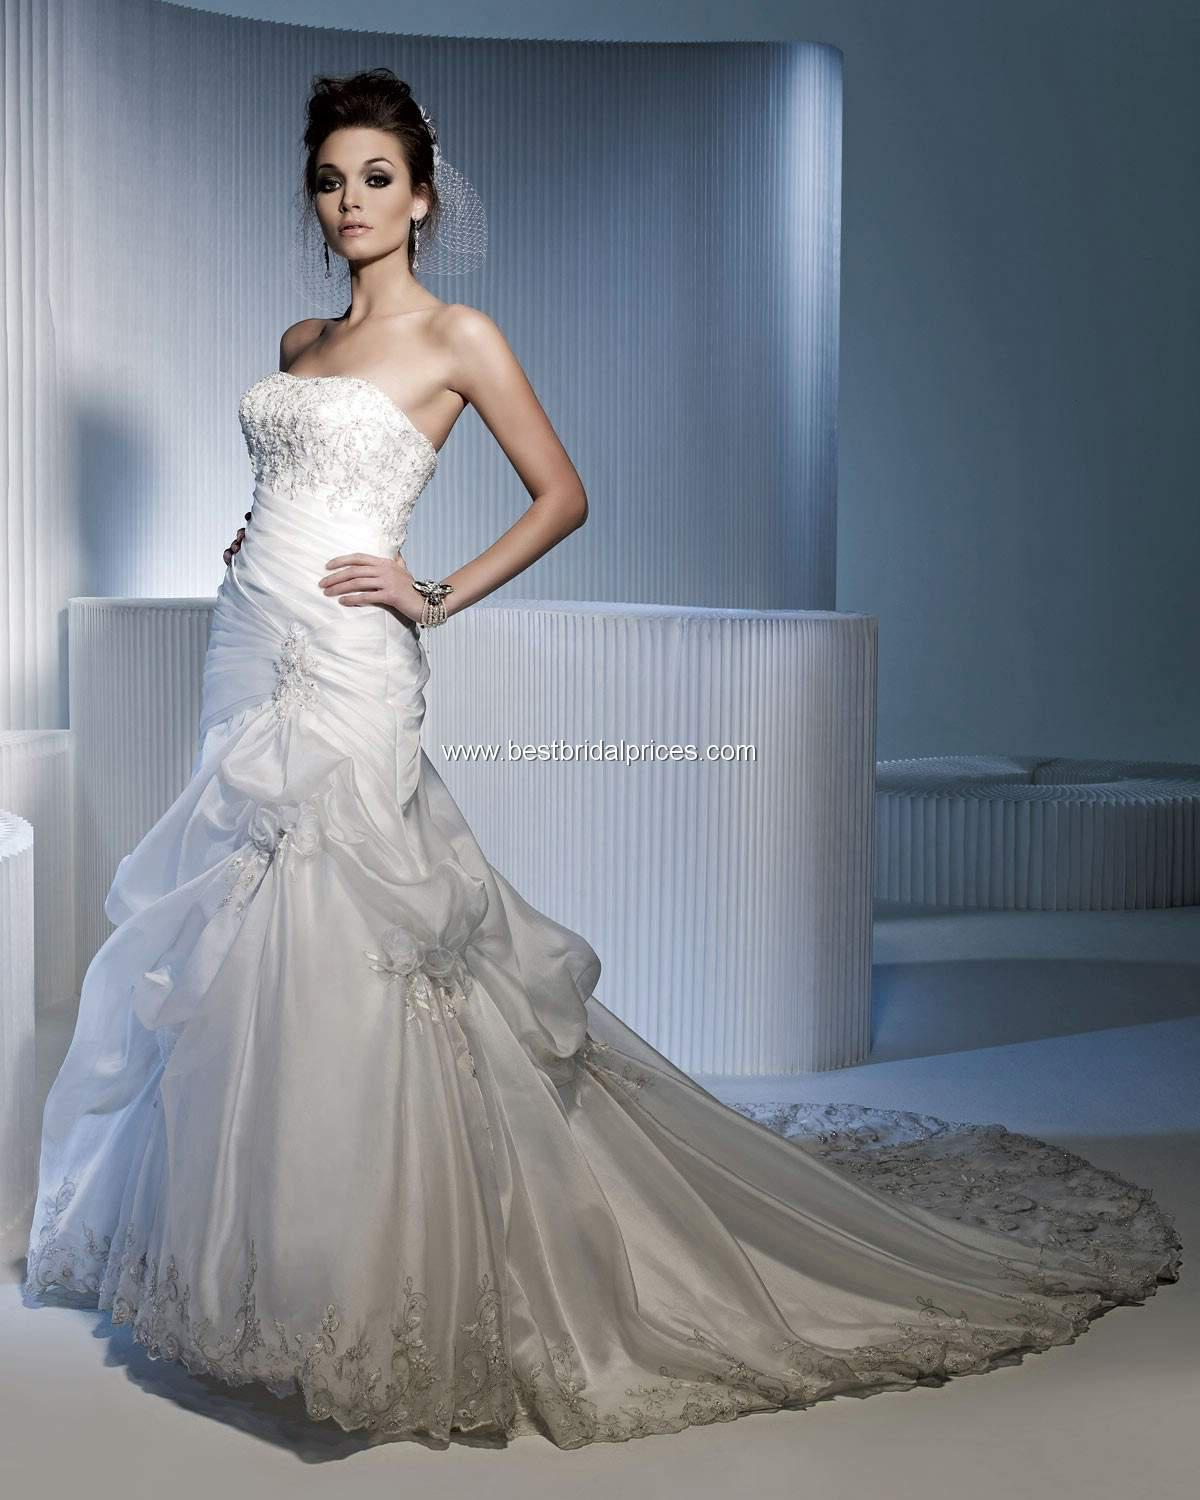 private label by g wedding dress | Wedding